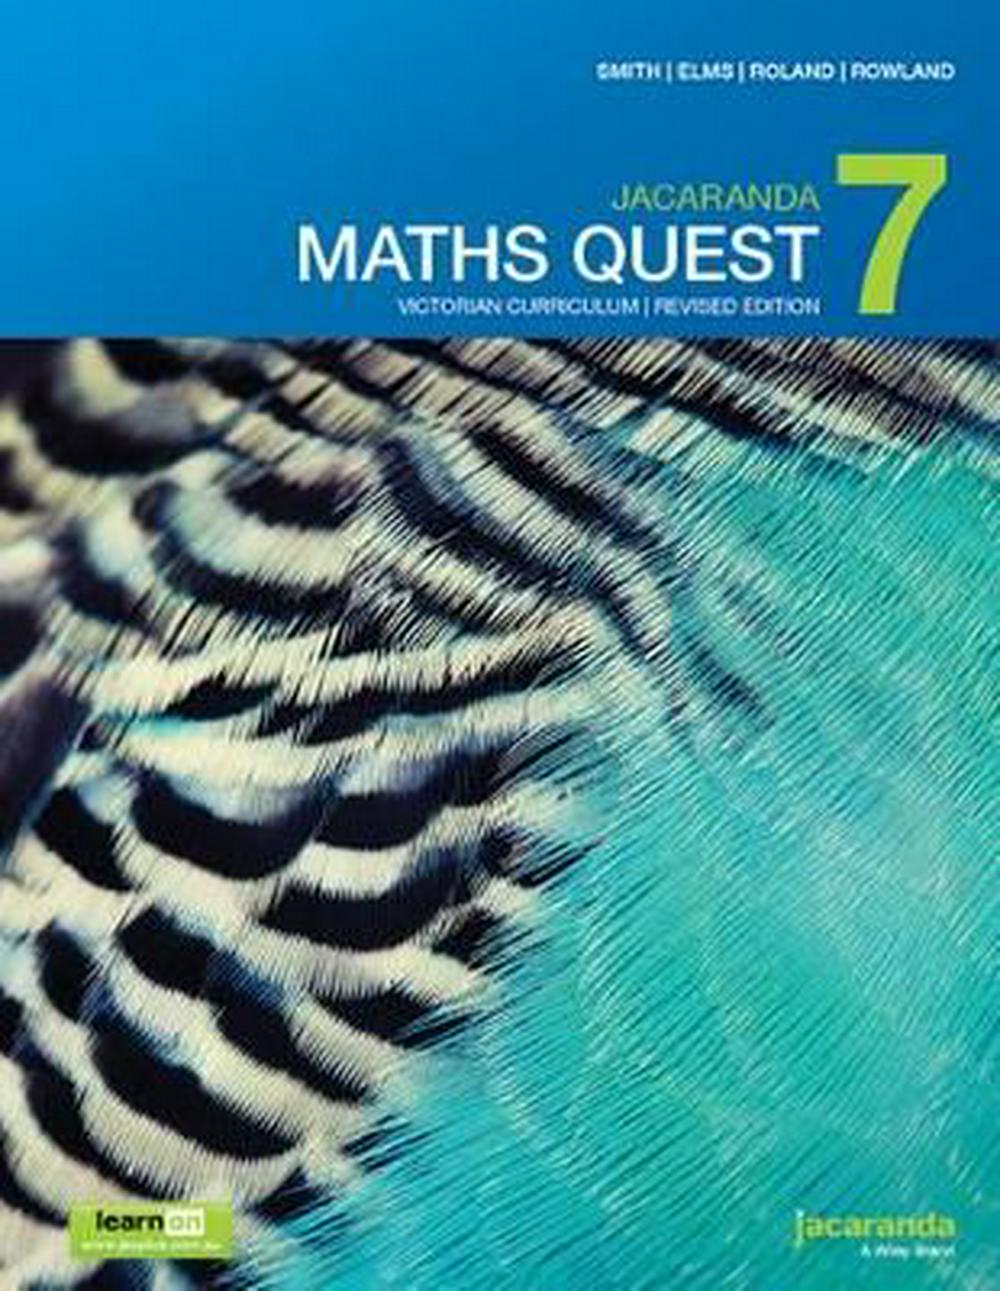 Jacaranda Maths Quest 7 Victorian Curriculum 1E (Revised) LearnON & Print by Catherine Smith,Lyn Elms,Lee Roland,Robert Rowland, ISBN: 9780730348535